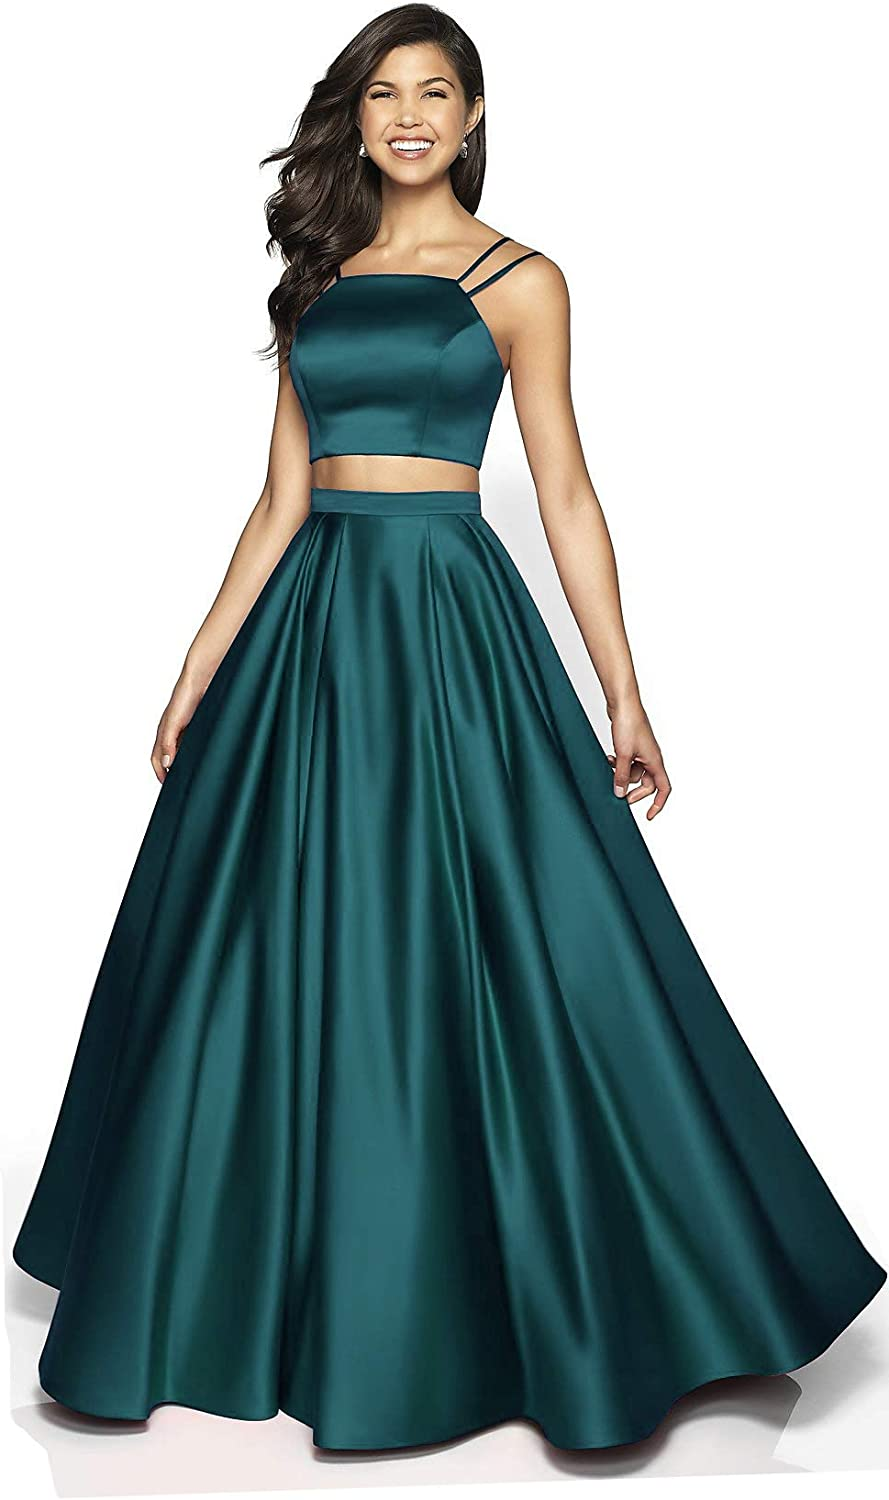 Liangjinsmkj Womens Sexy 2 Piece Prom Dresses Long Formal Evening Ball Gowns with Pockets